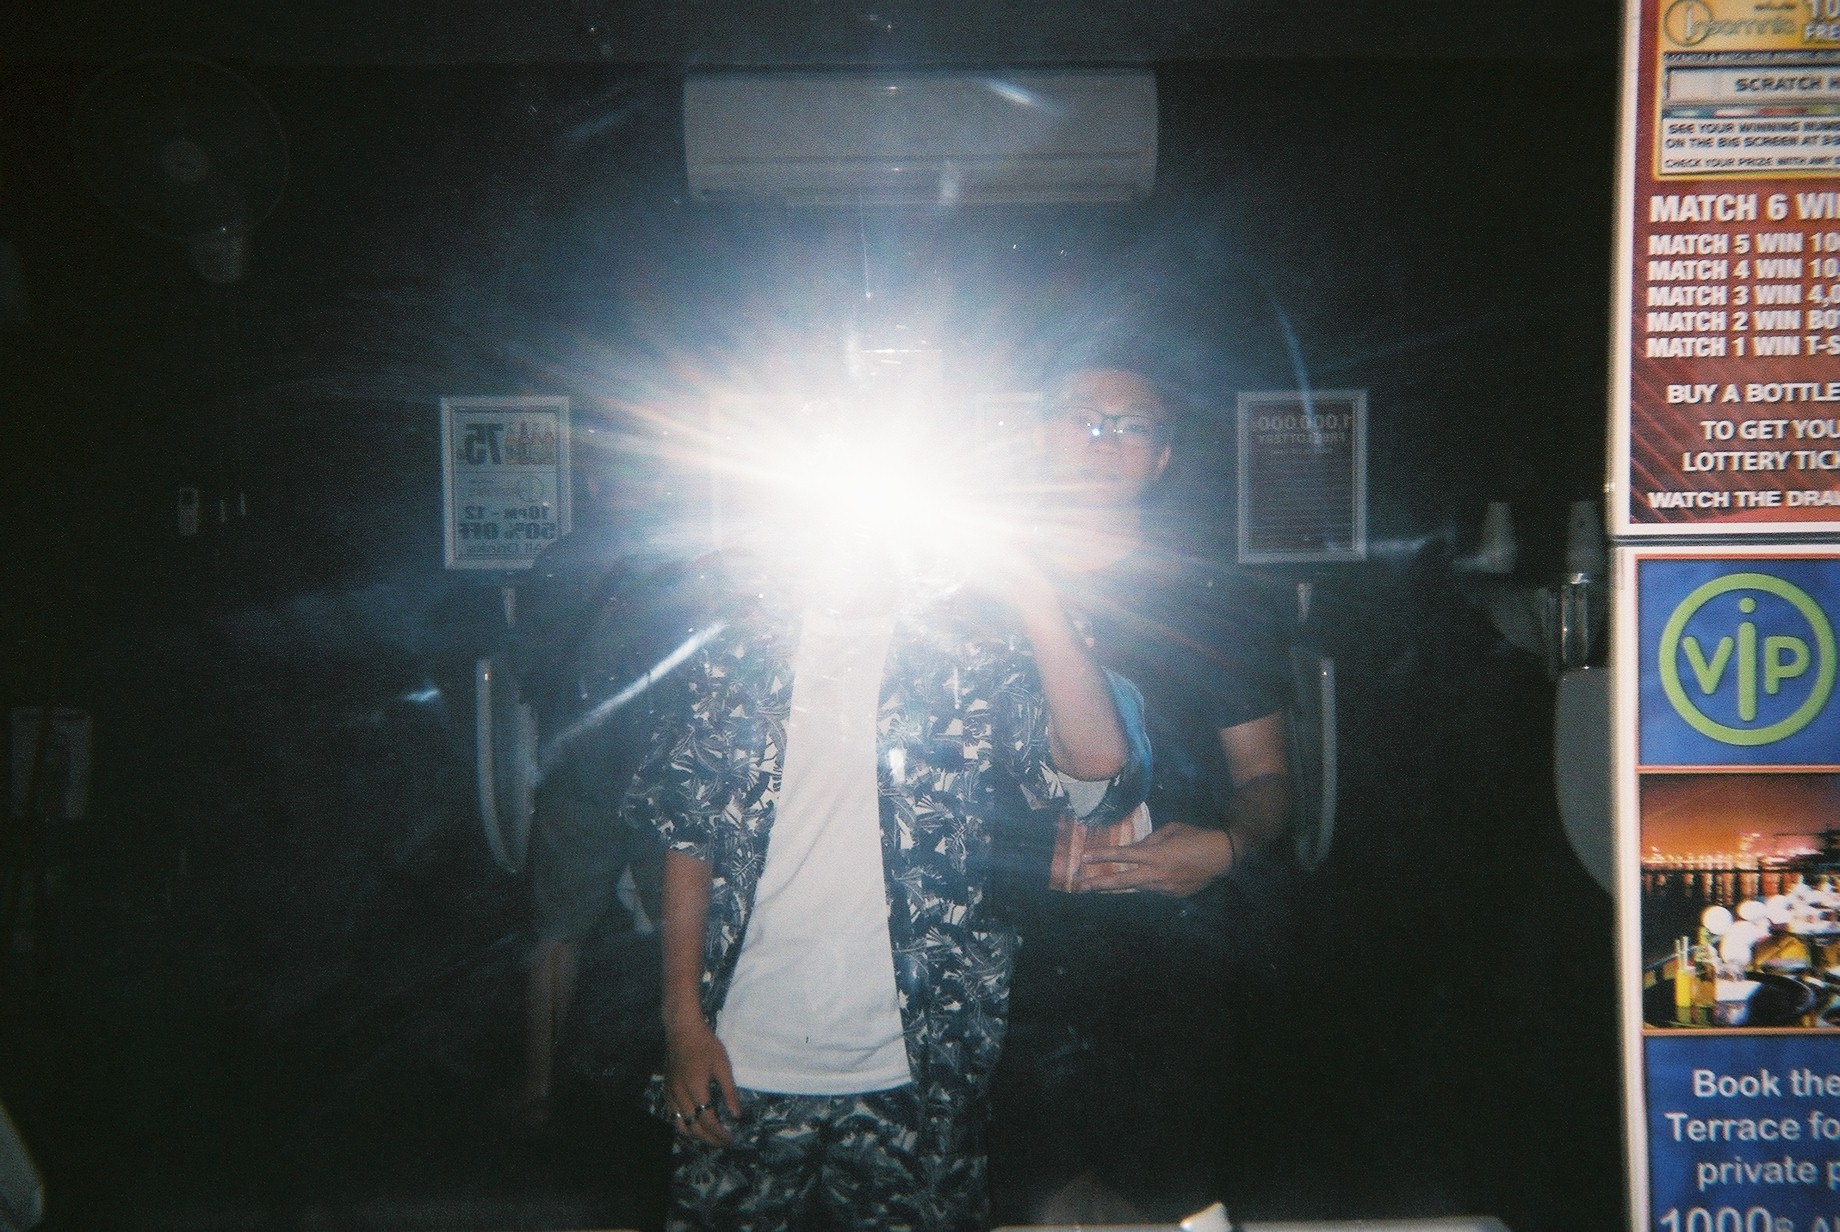 mirror shot using a disposable camera with flash on